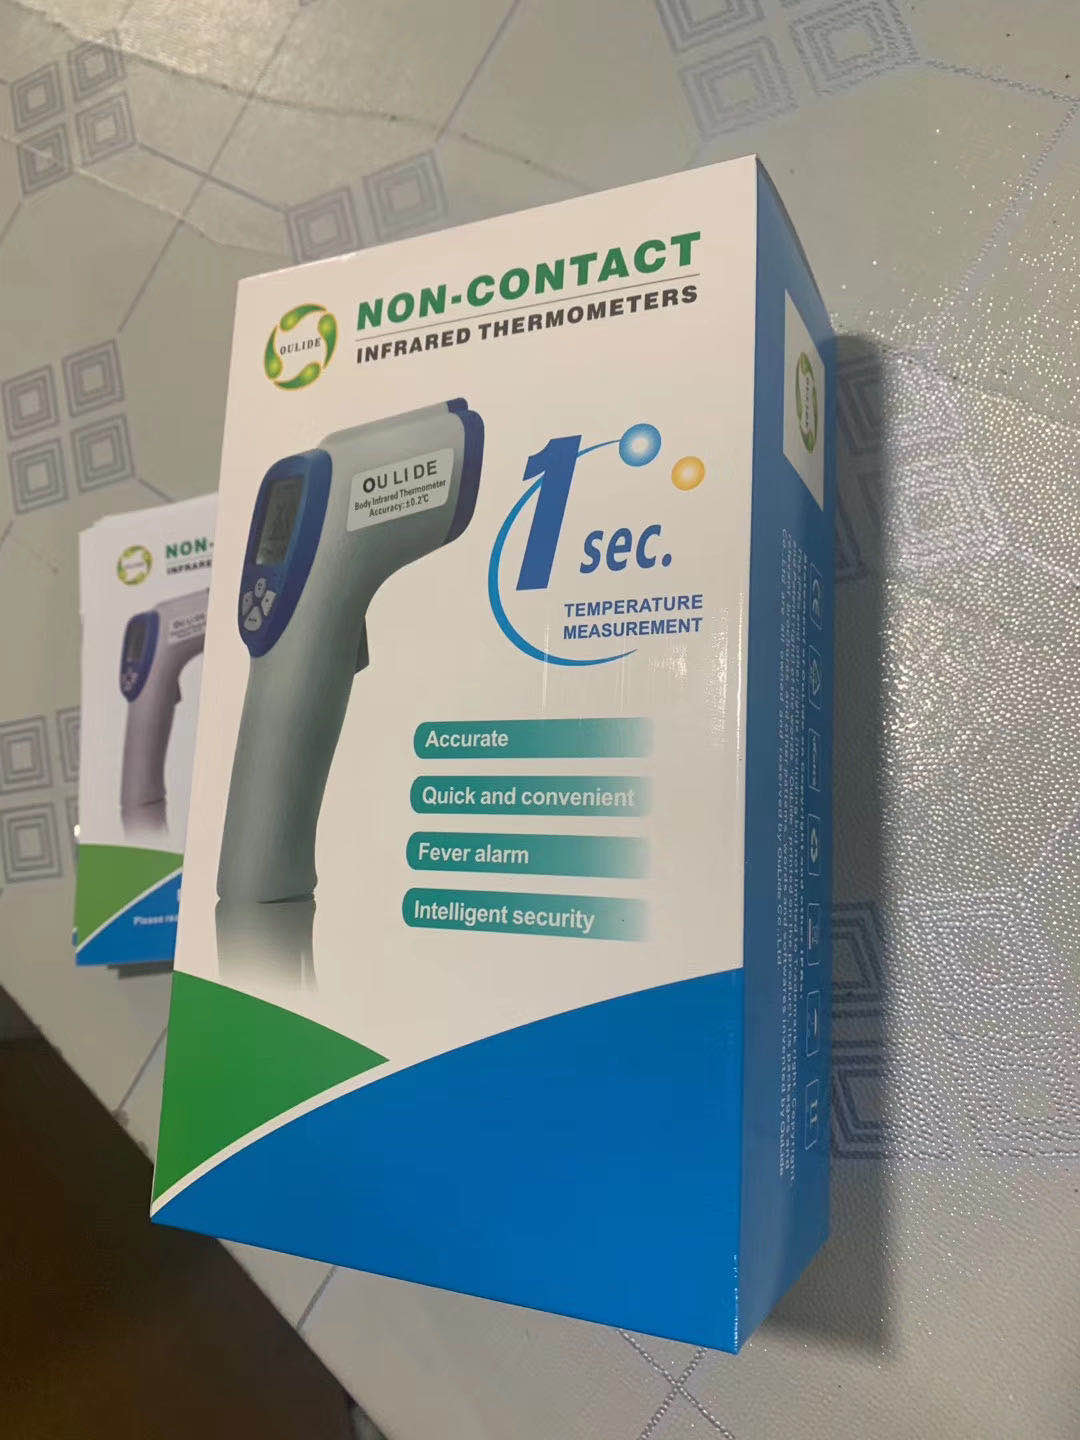 Non-Contact infrared thermometer - SOP-TECHNOLOGIES, INC.